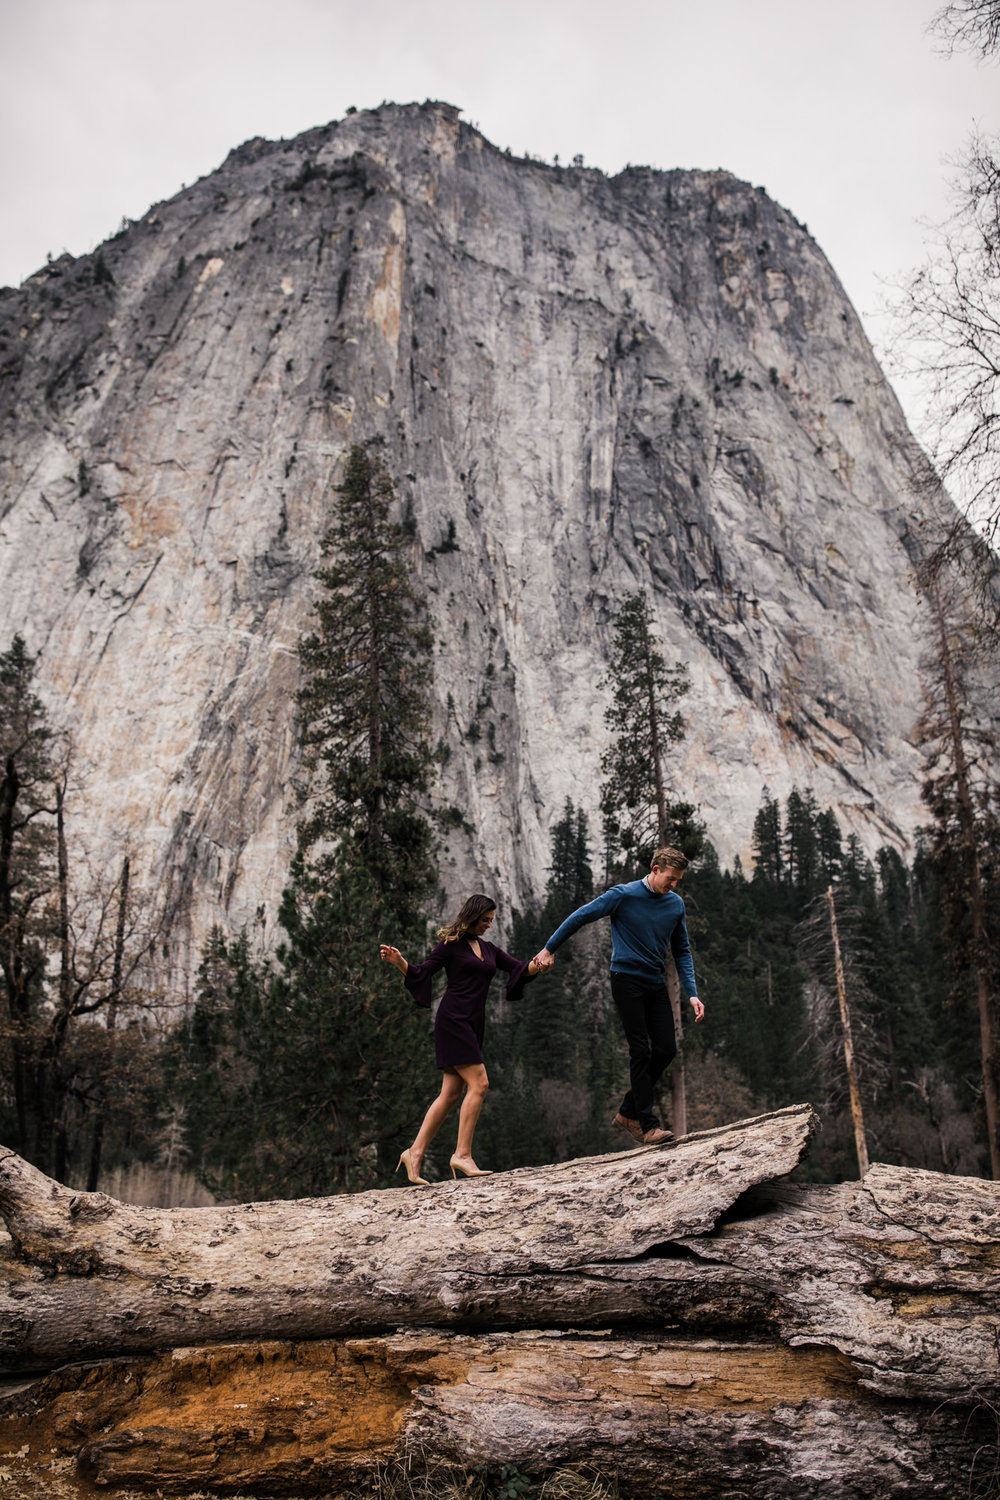 mountain top engagement session in yosemite national park | adventurous destination wedding photographer | the hearnes adventure photography | www.thehearnes.com